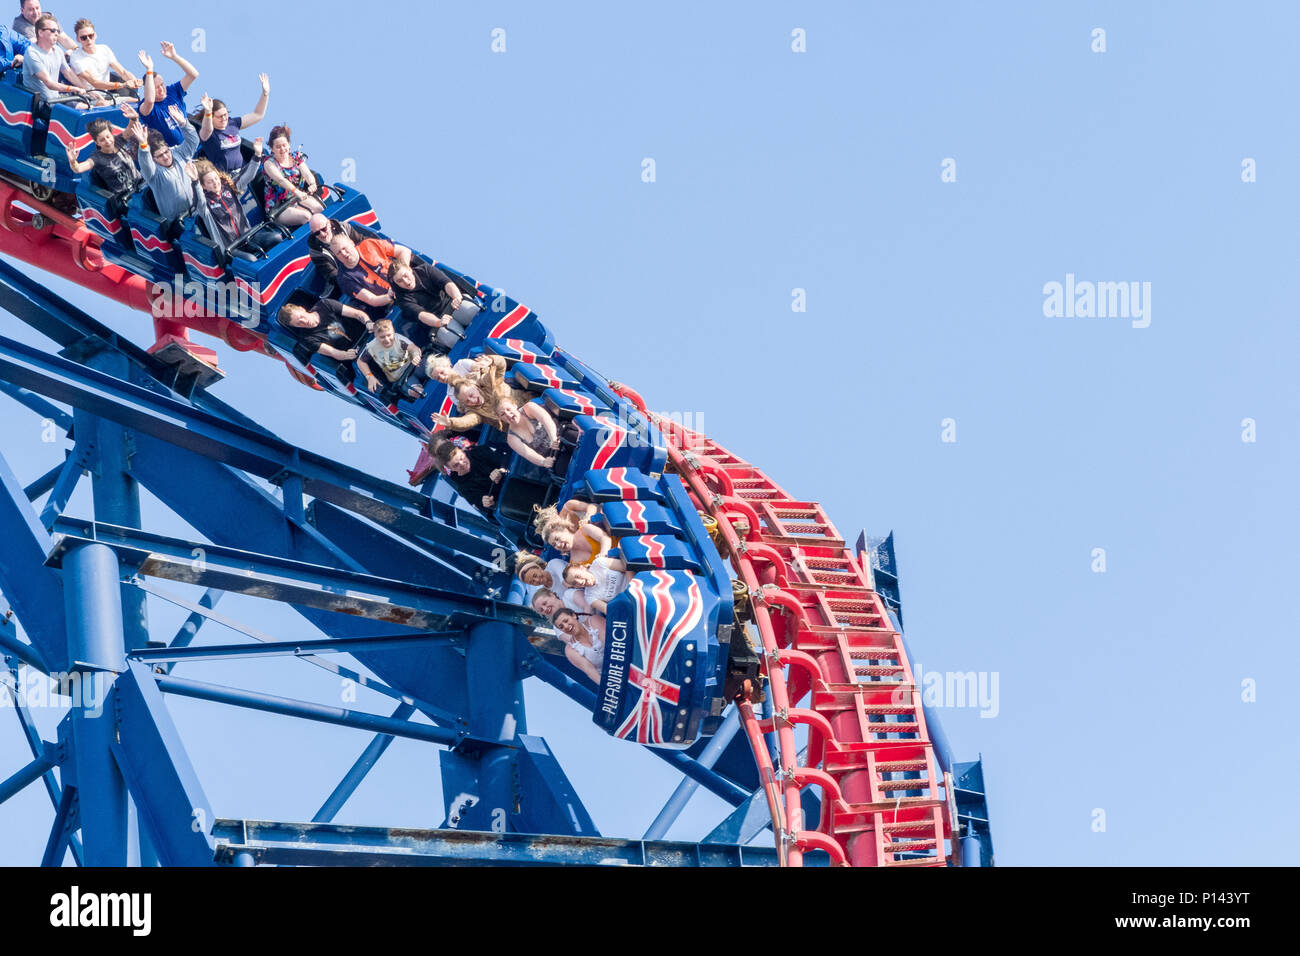 People at the top of The Big One roller coaster, Blackpool Pleasure Beach, Lancashire, England, UK - Stock Image